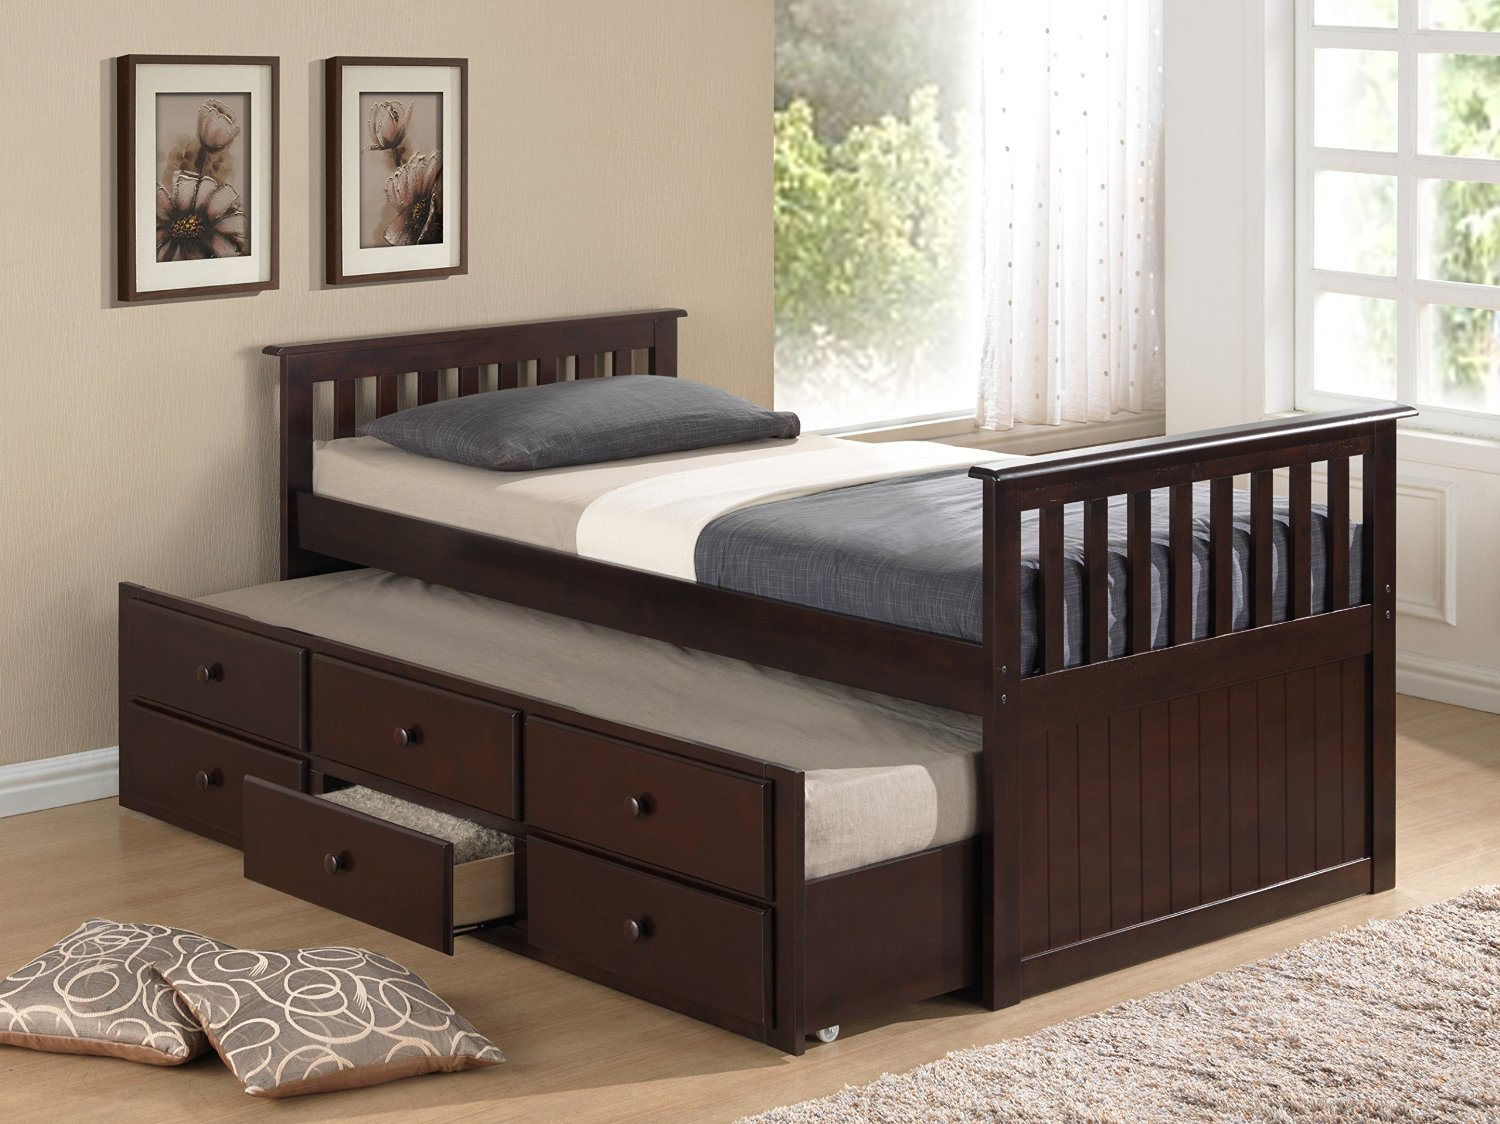 Twin Bed with Pull Out/Slide Out (Trundle) Bed Underneath